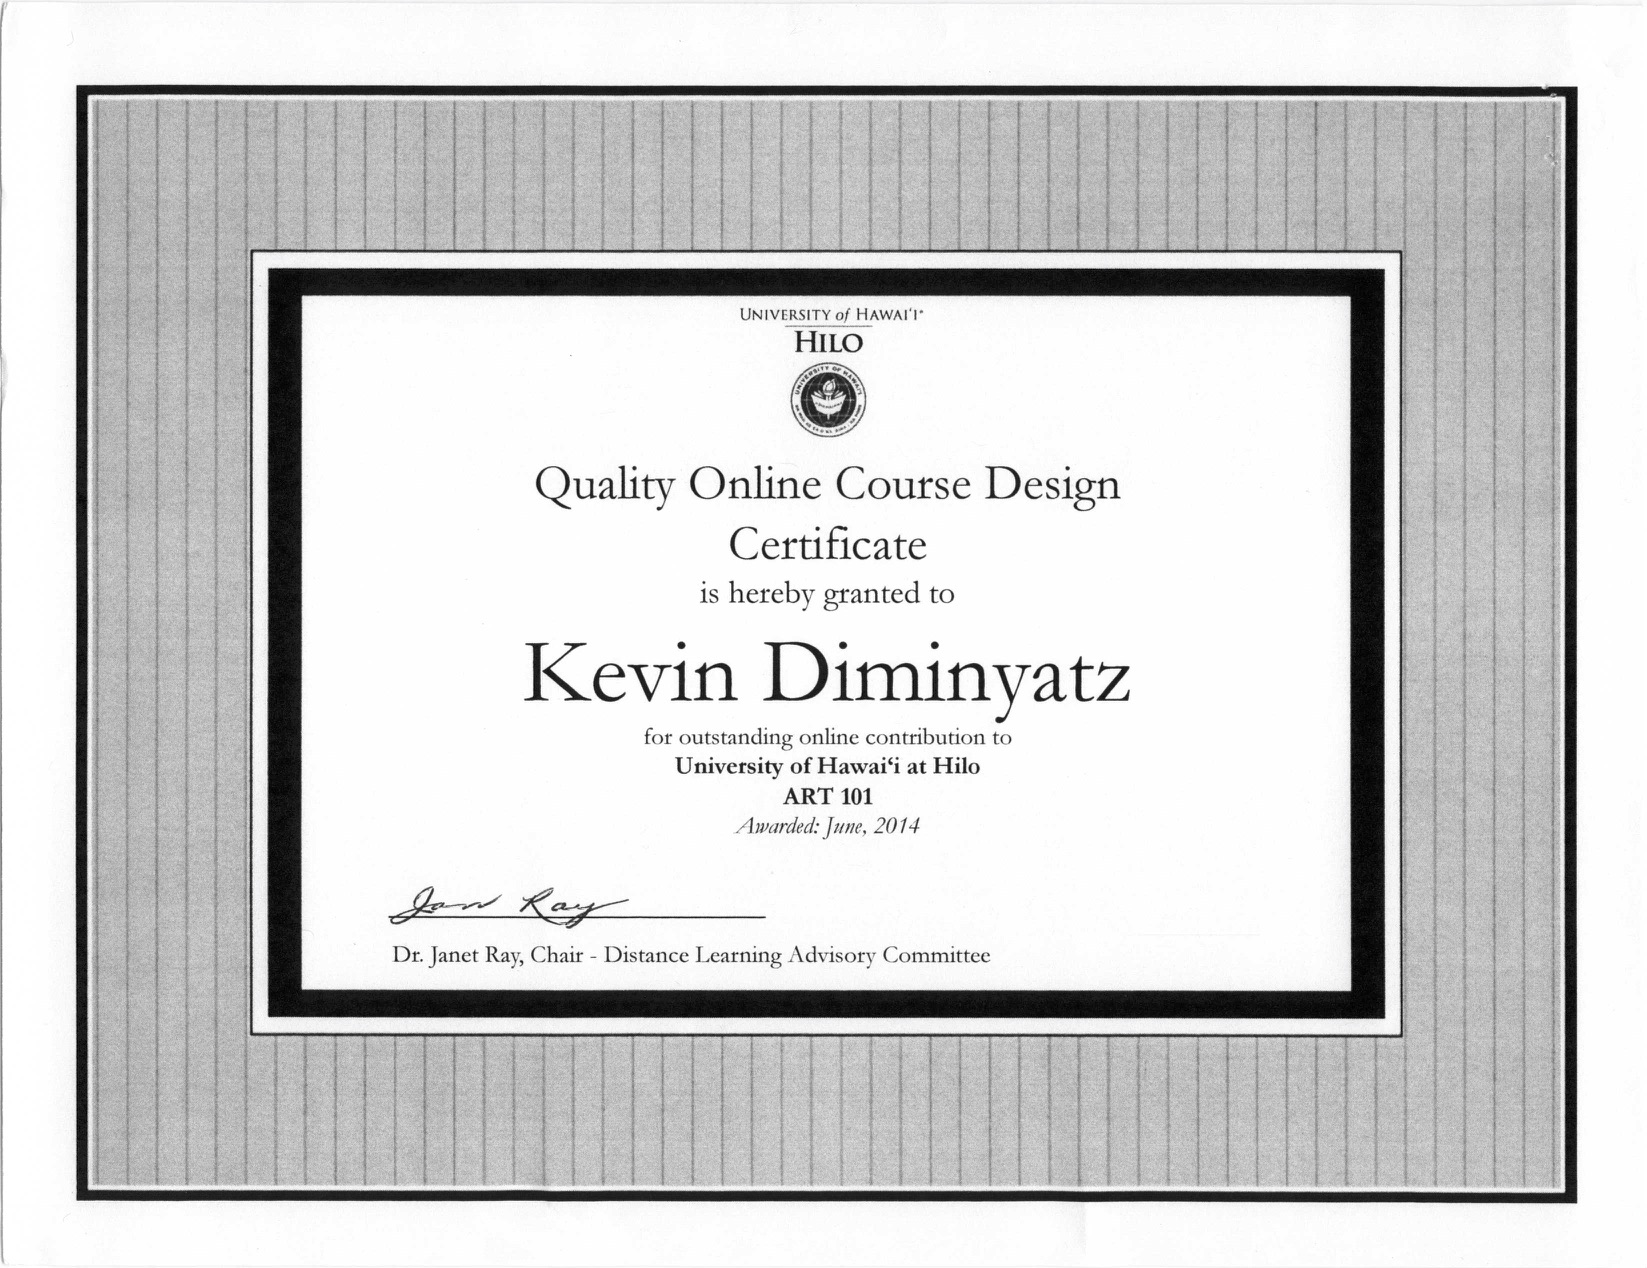 Quality Online Course Design Certificate, awarded to Kevin Diminyatz